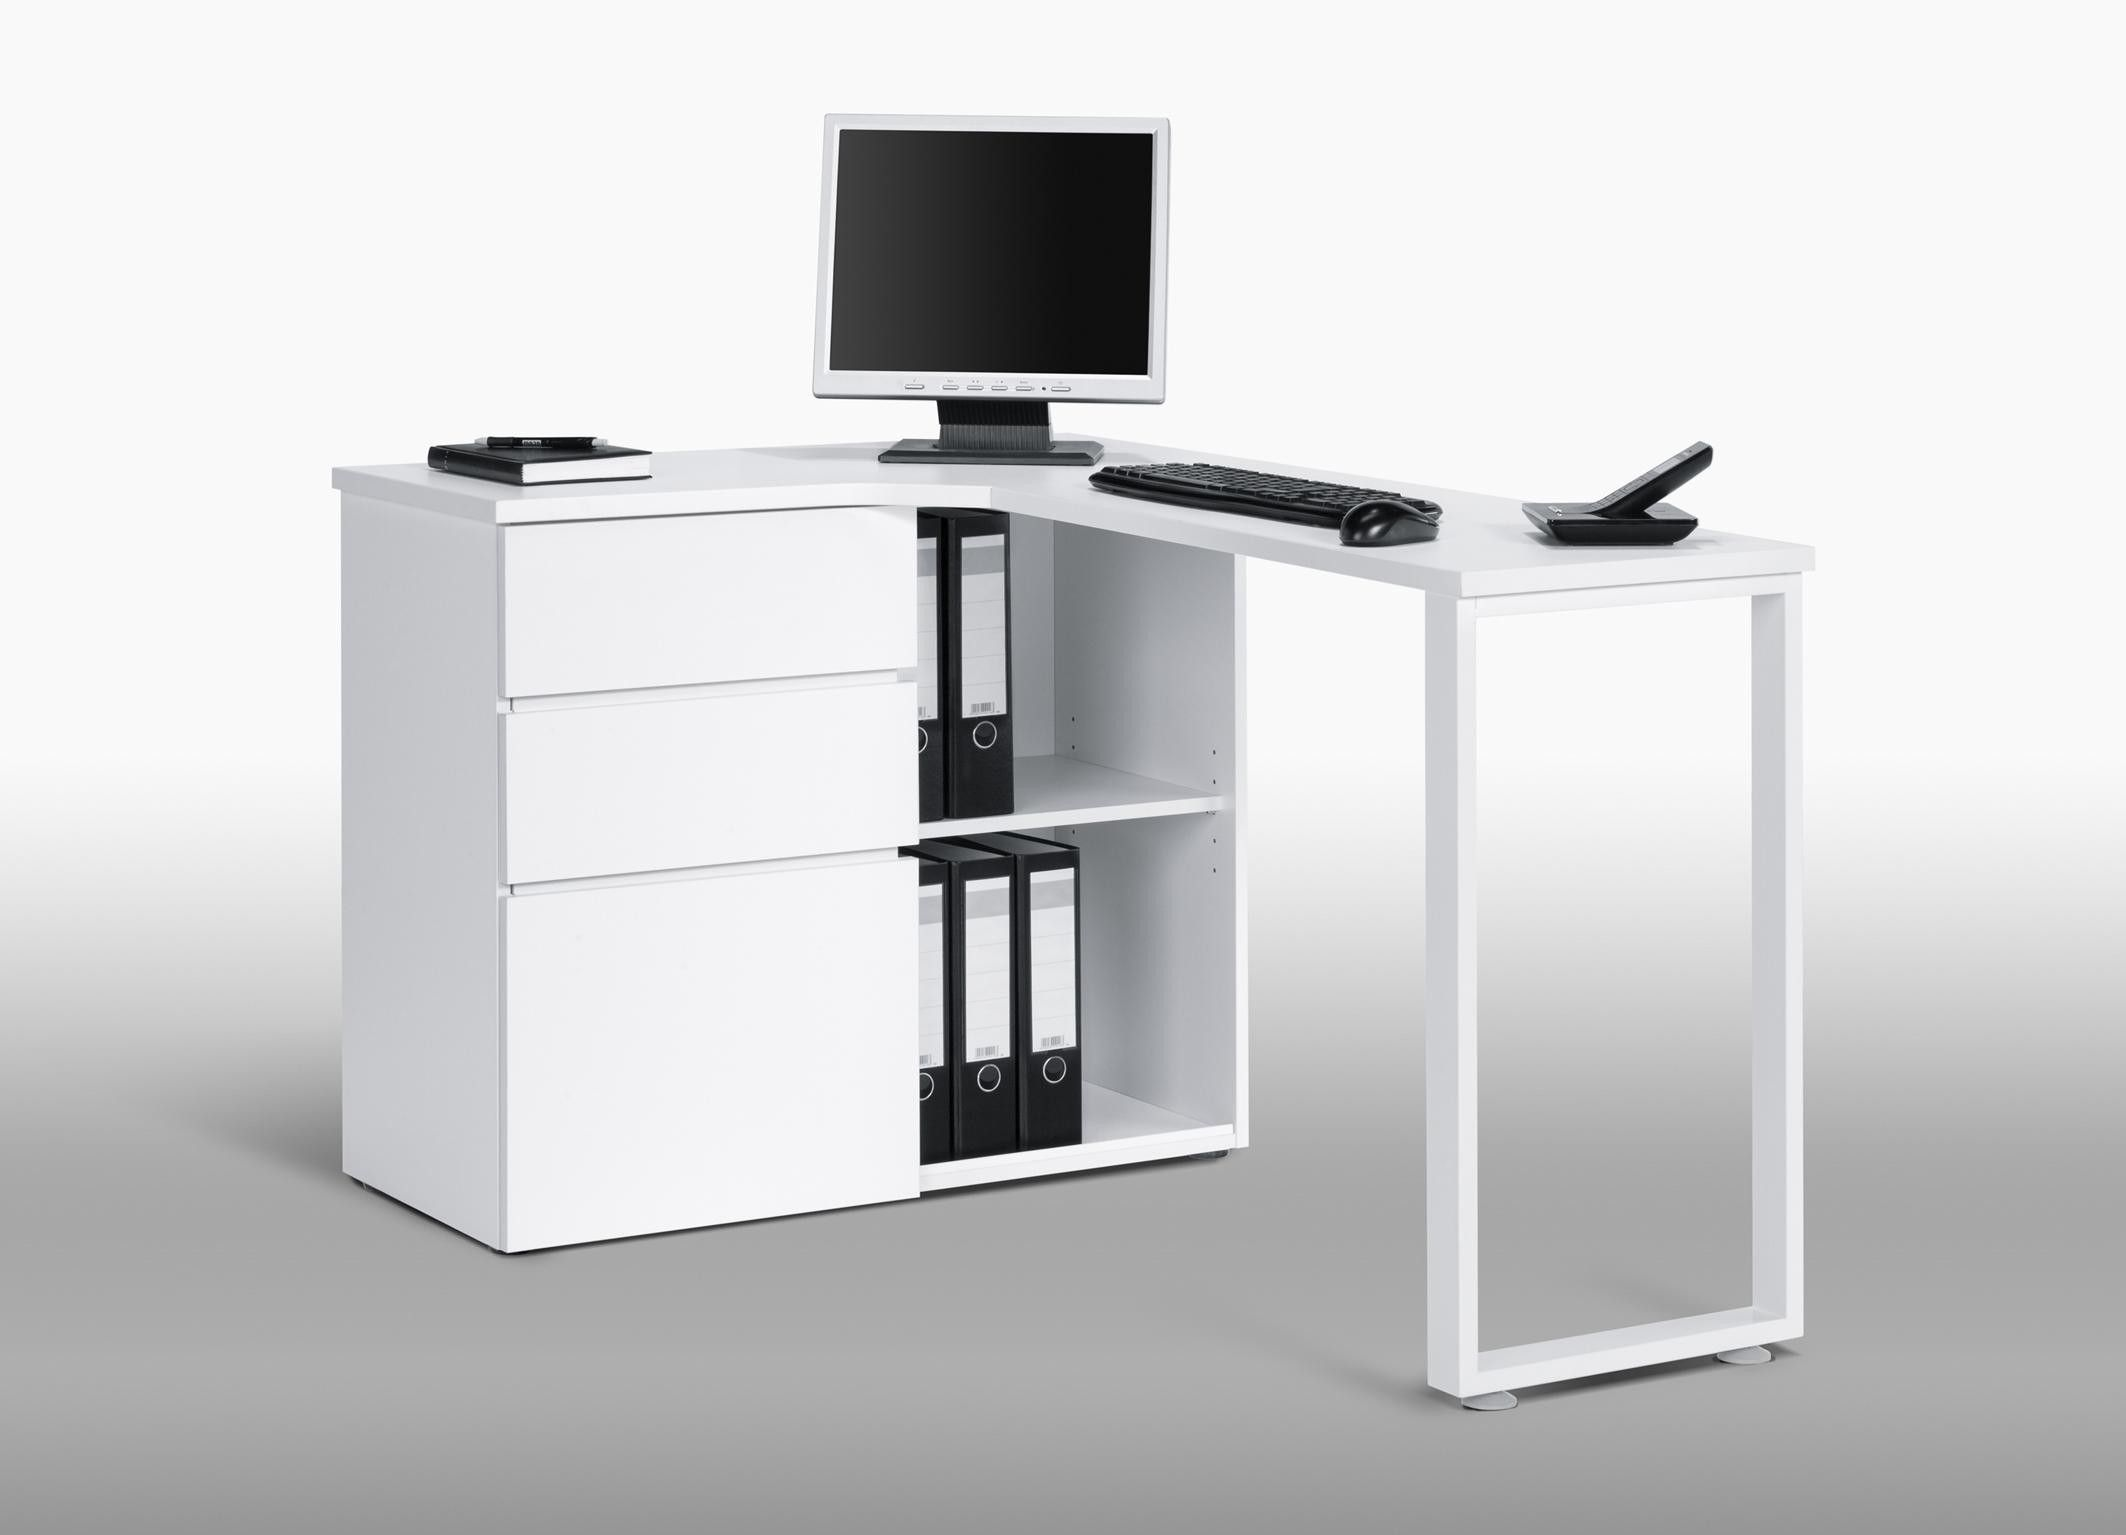 Bureau informatique d 39 angle design avec rangement blanc for Bureau informatique design